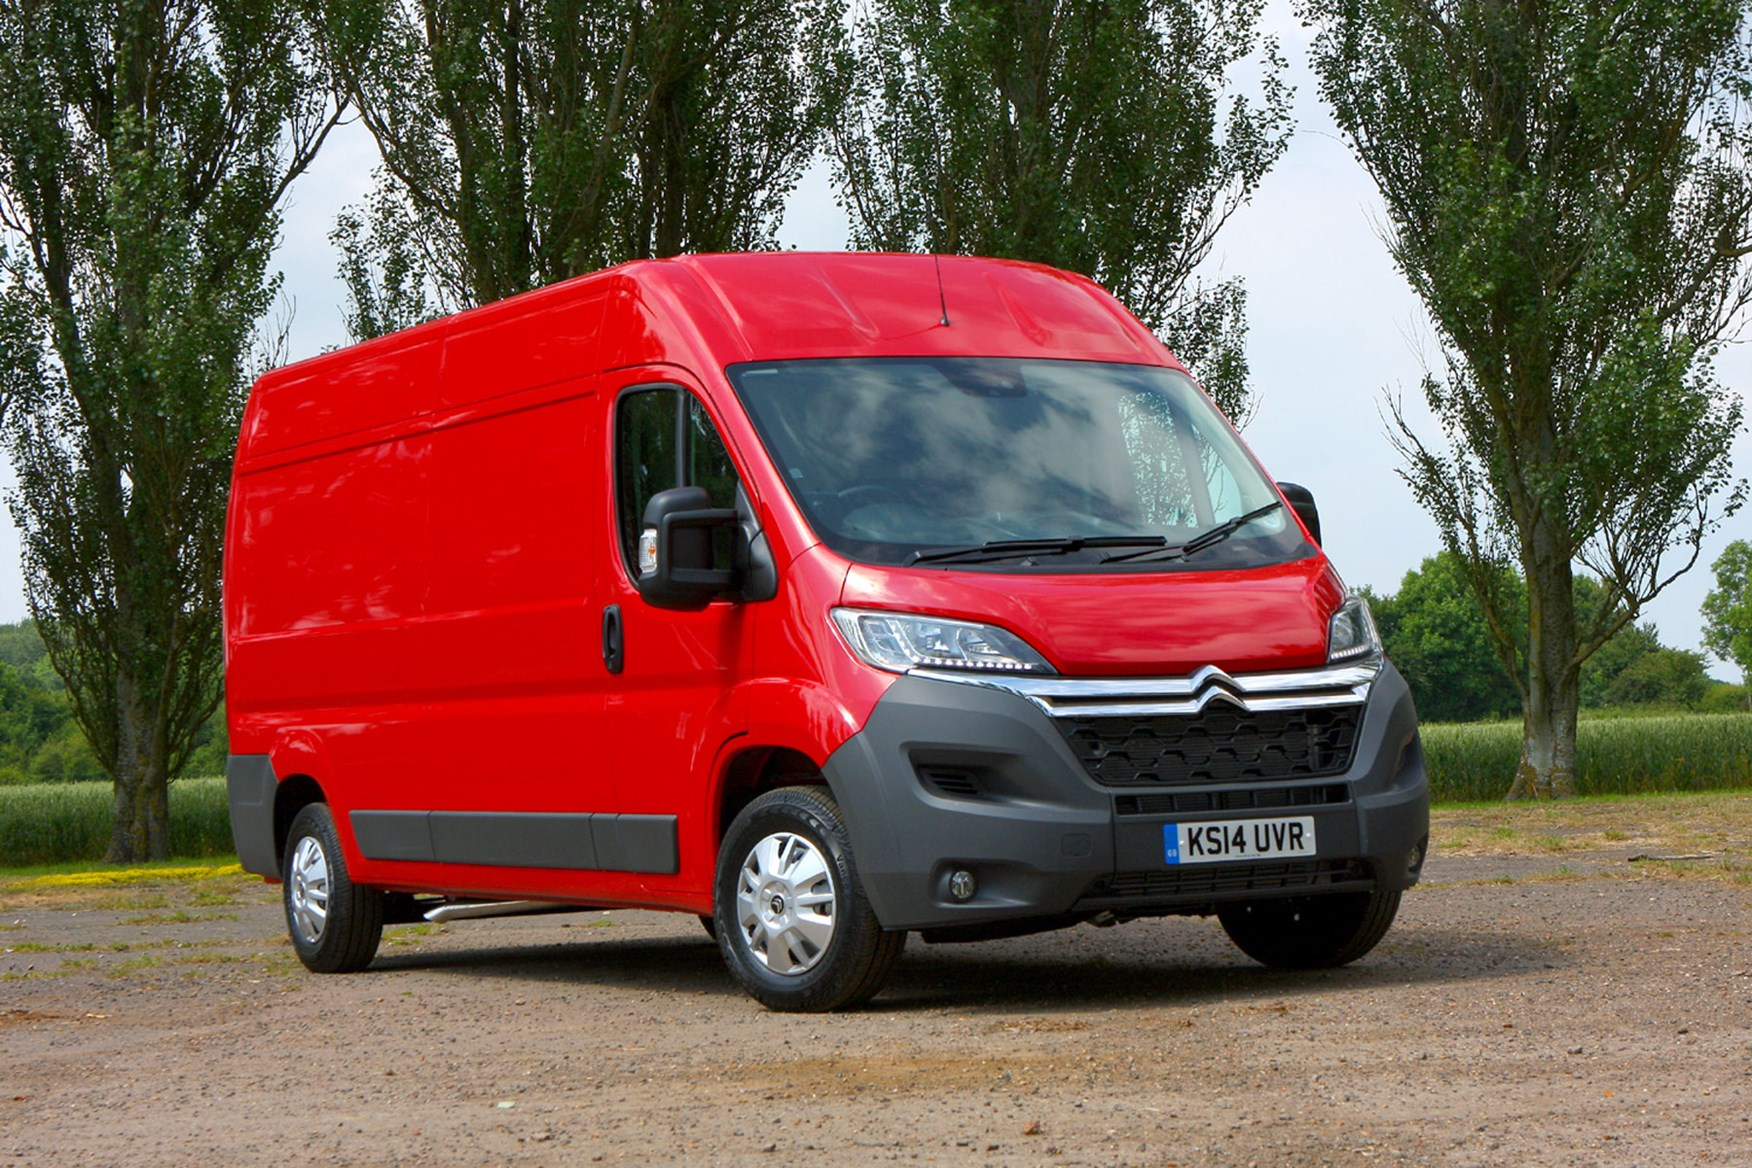 Citroen Relay 2.2 HDi 130 review - front view, red